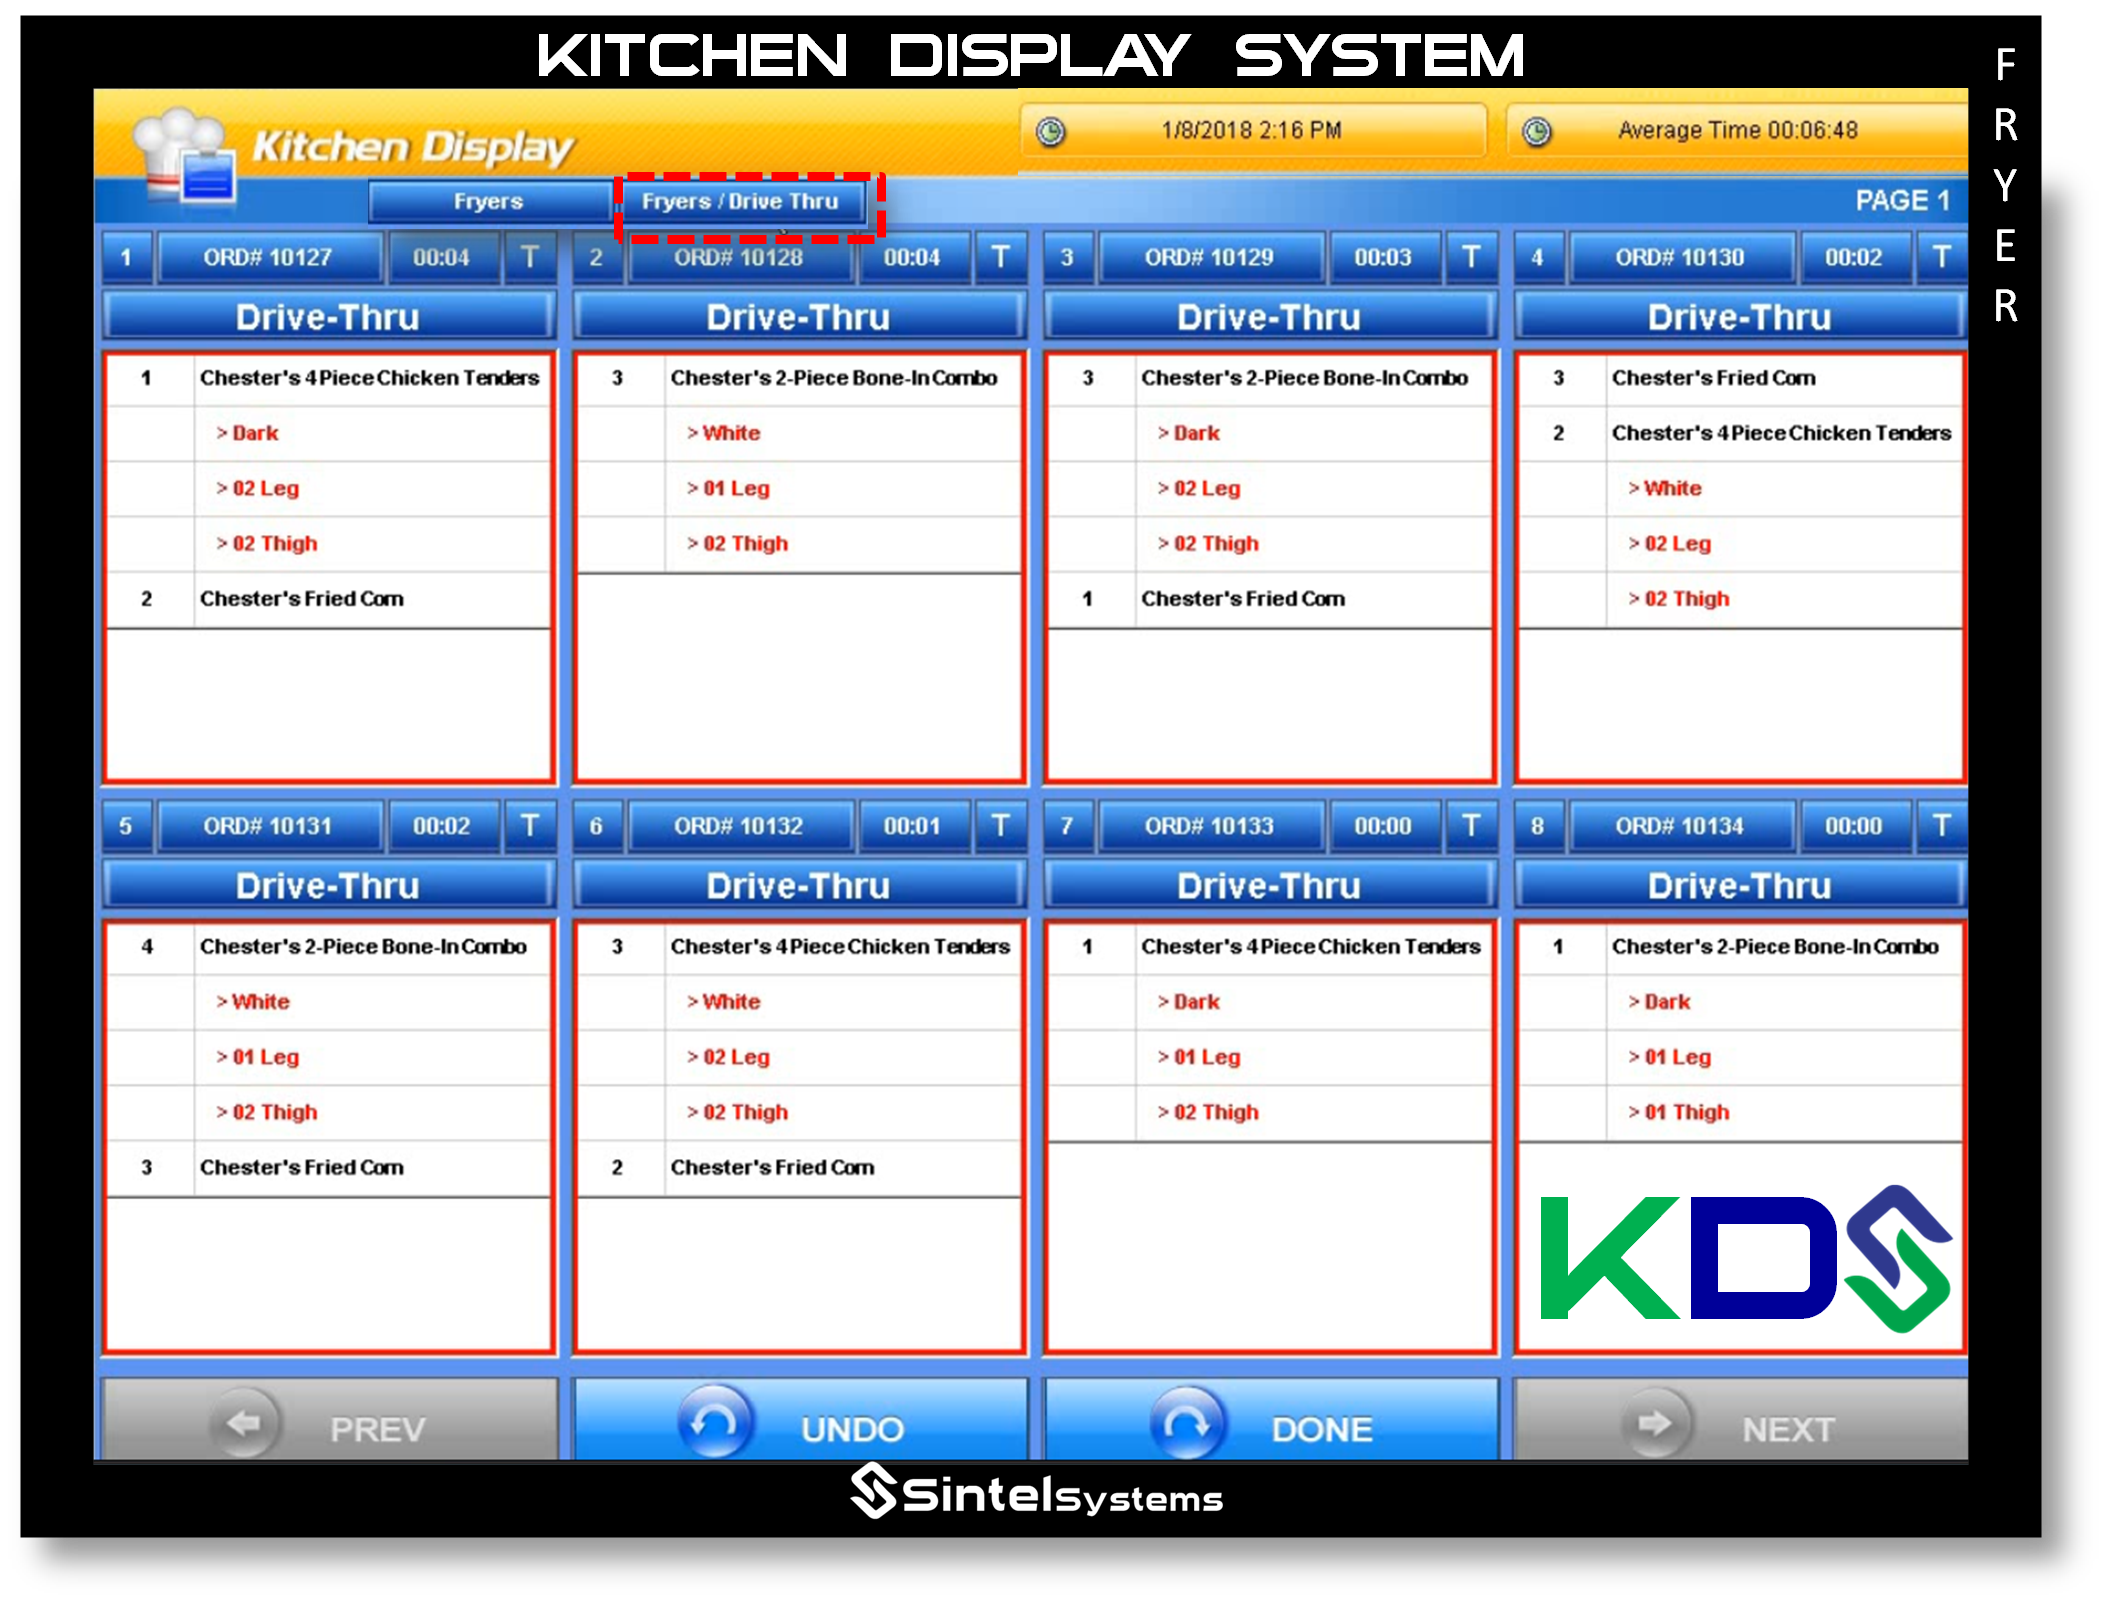 Image-1-KDS-Kitchen-Display-Systems-POS-Fryer